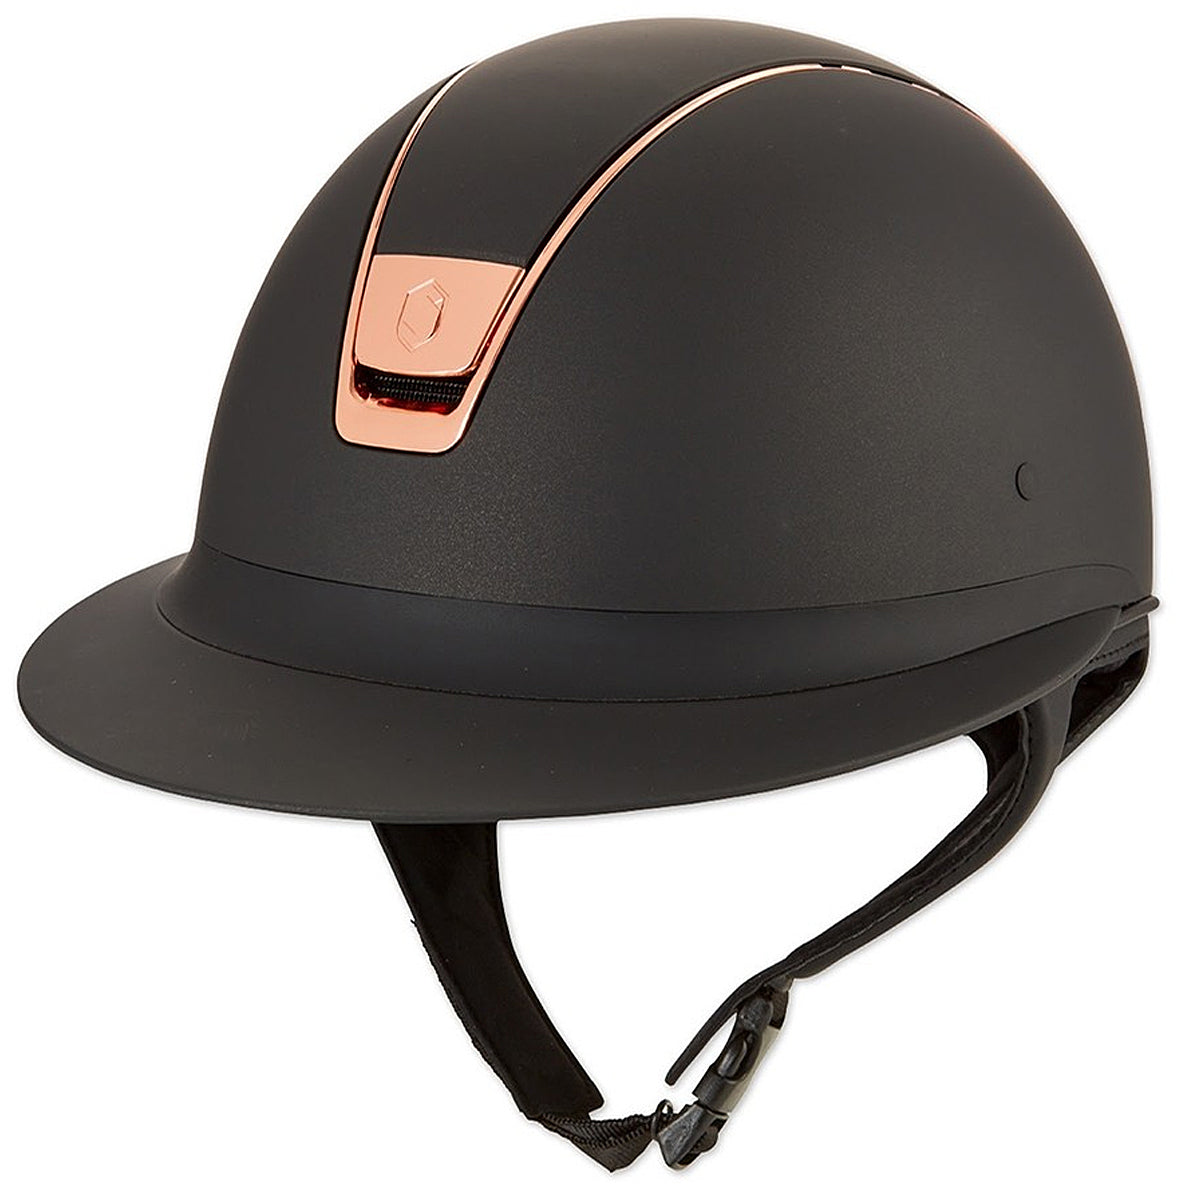 Samshield Miss Shield Helmet - Rose Gold